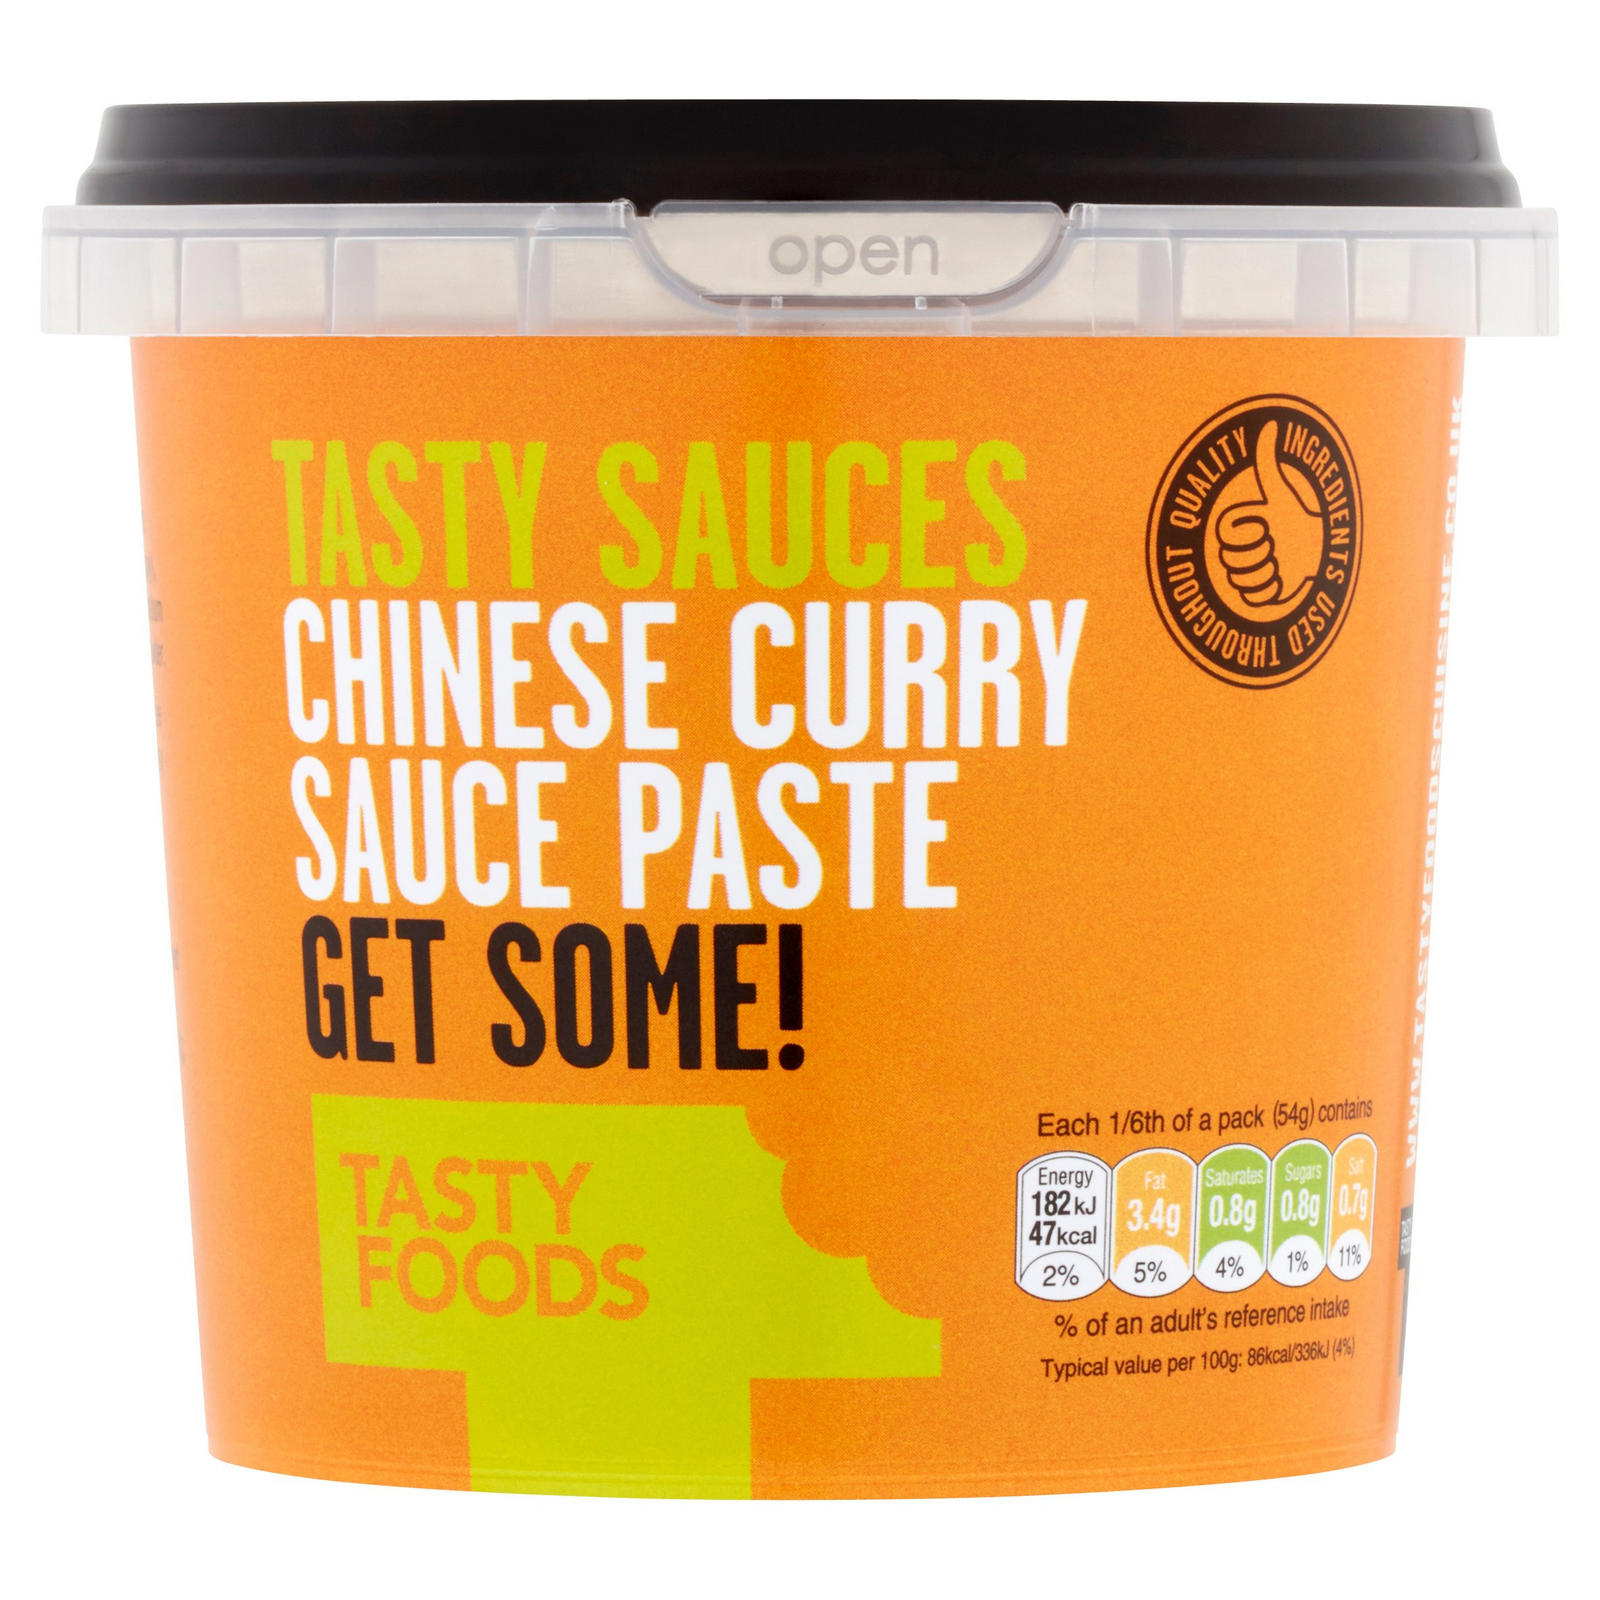 Tasty Foods Tasty Sauces Chinese Curry Sauce Paste 325g